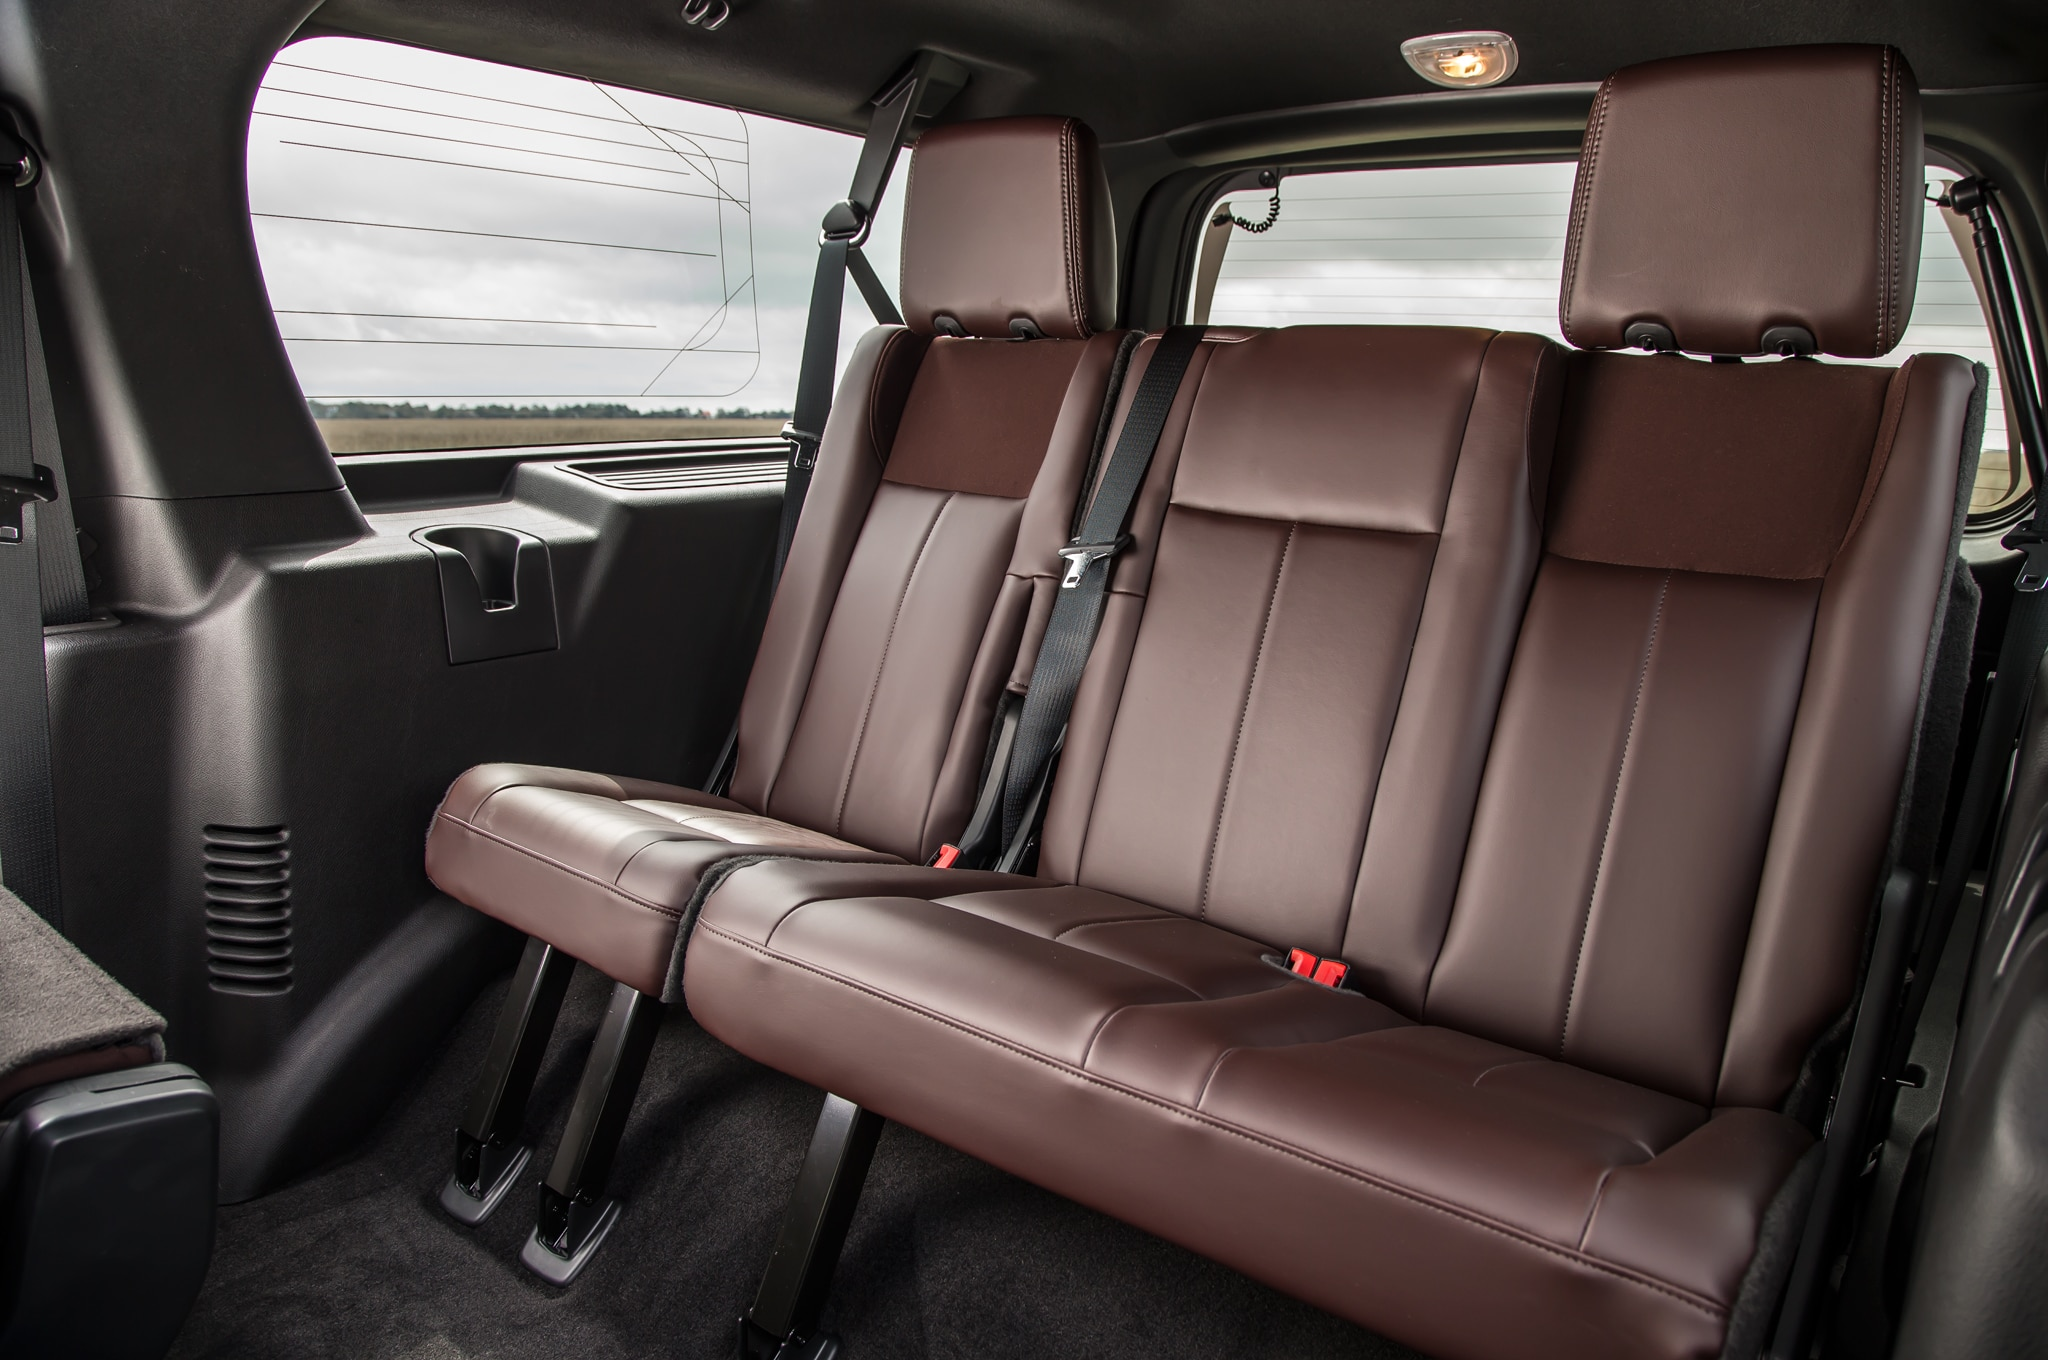 Ford Expedition Seating Configurations Gallery